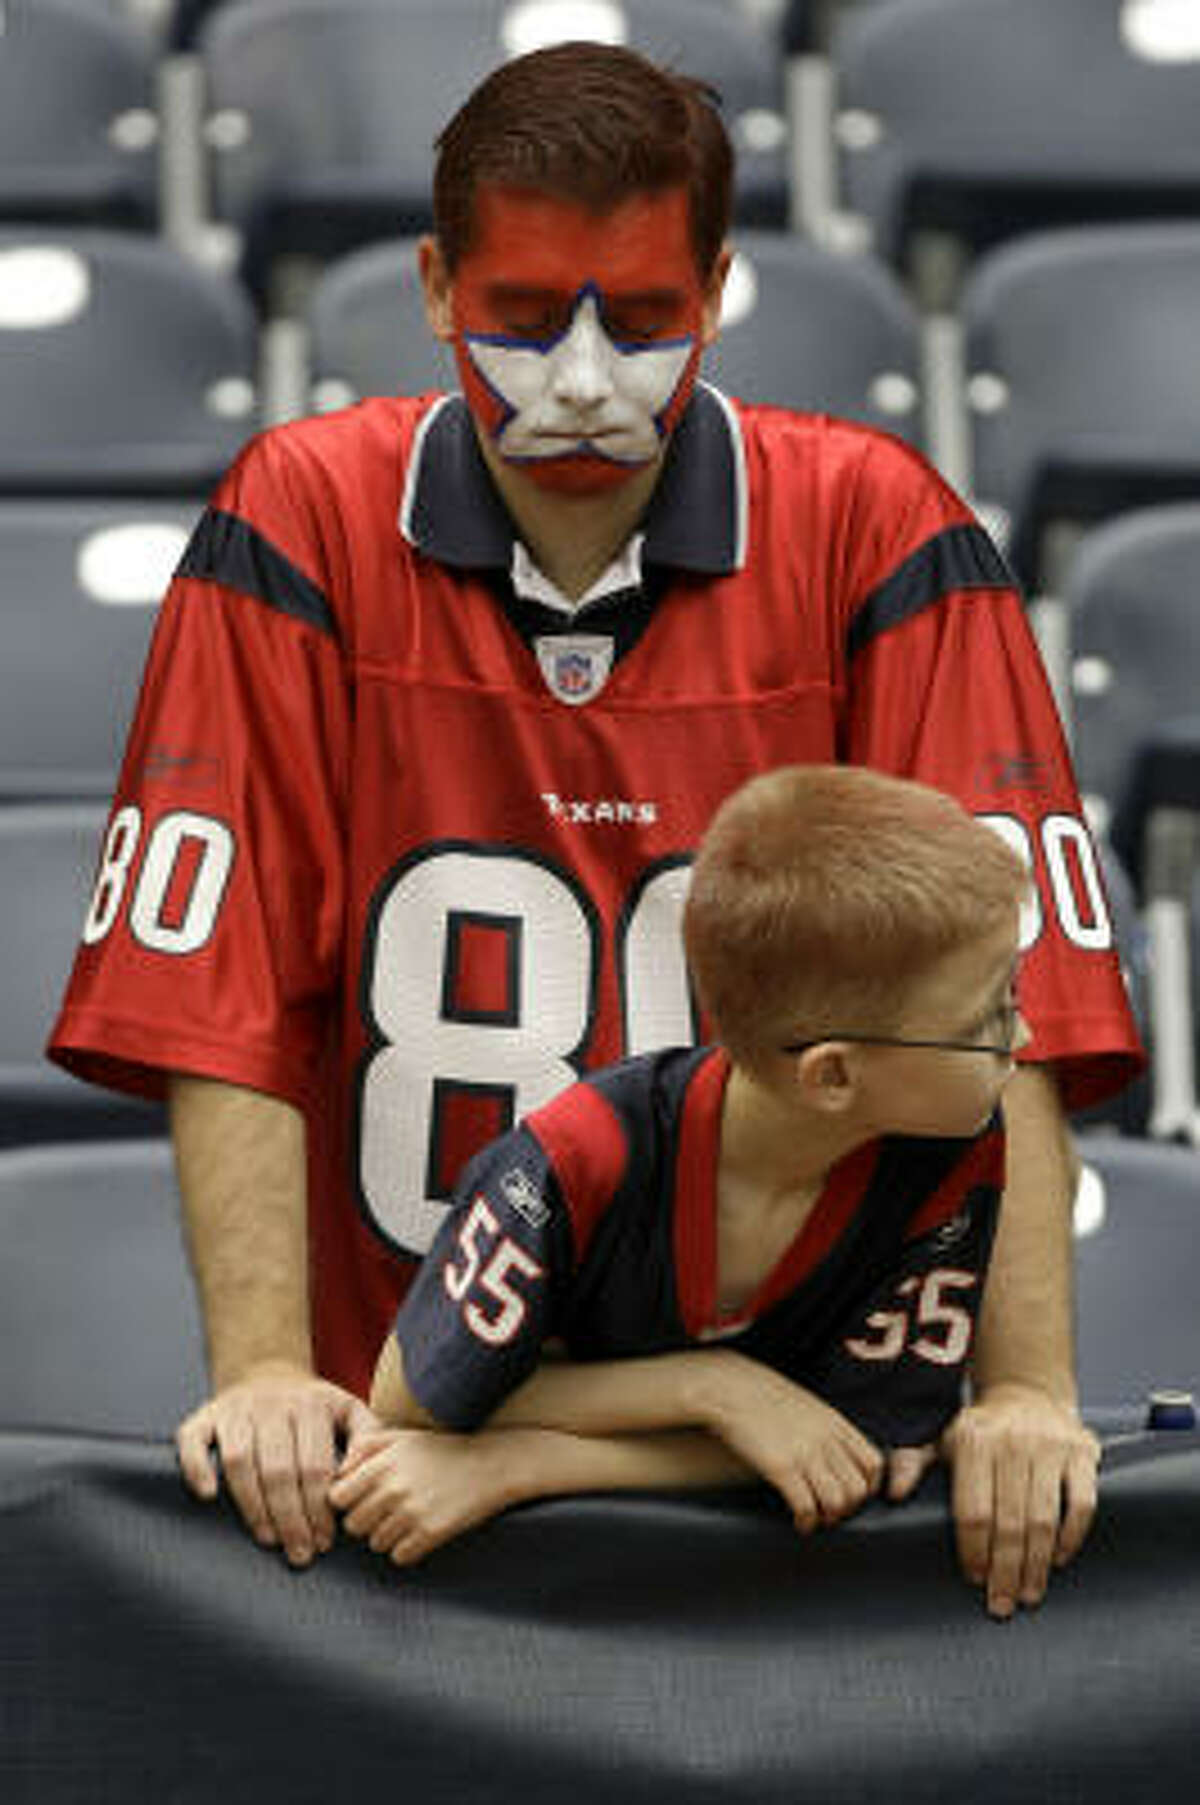 Chris Reid, with Joshua Reid, reacts to the Texans loss to the Jacksonville Jaguars 31-24.